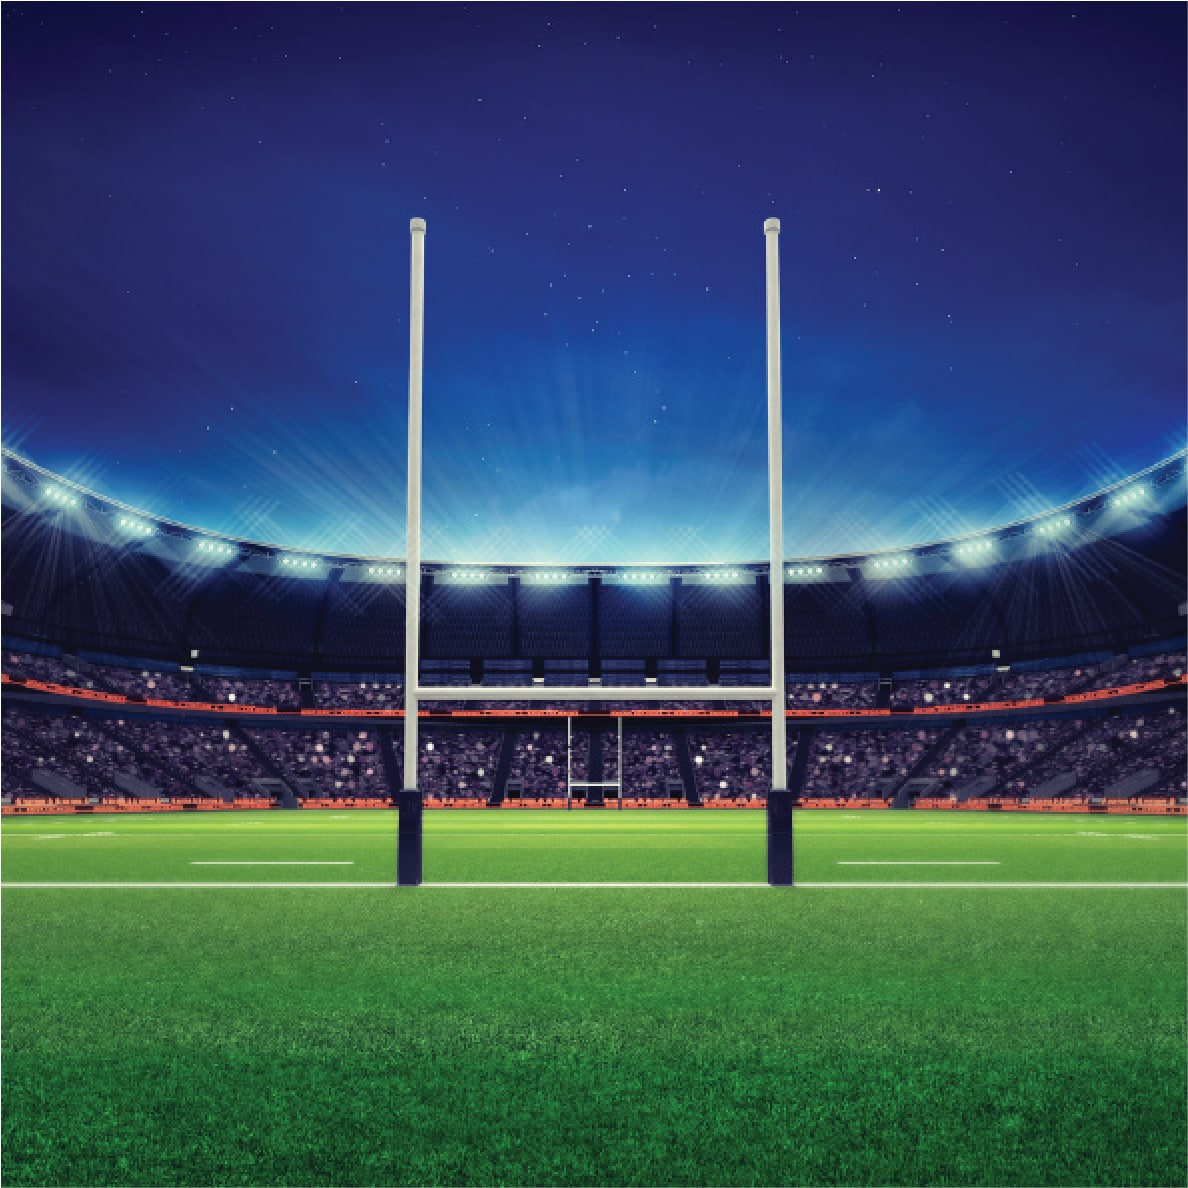 Stadiums and Pitches